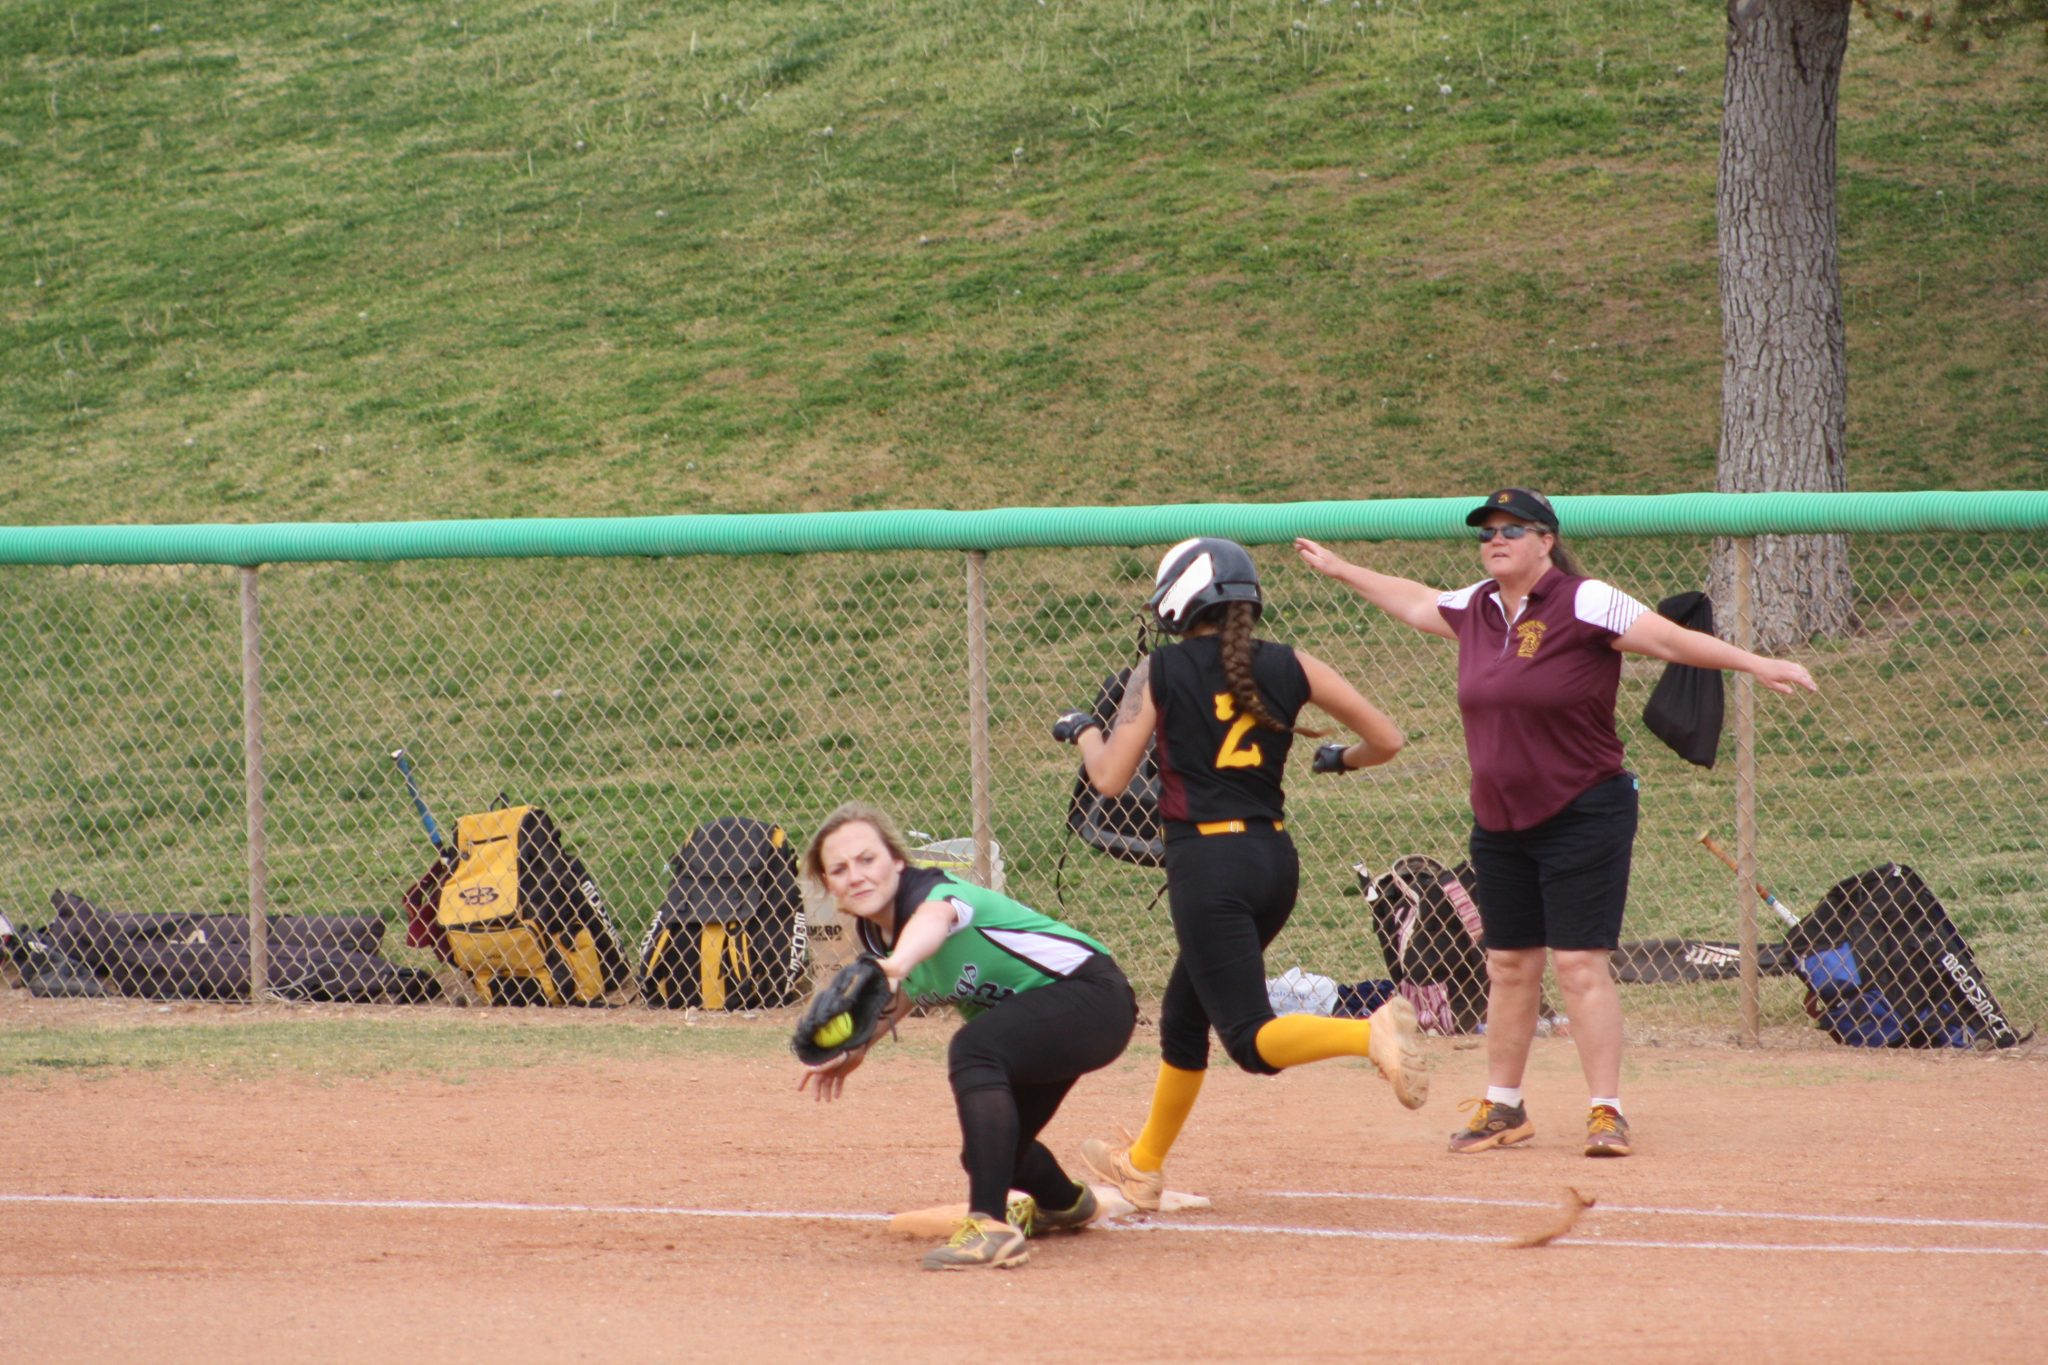 Trojans shut down Lady Dogs 10-0